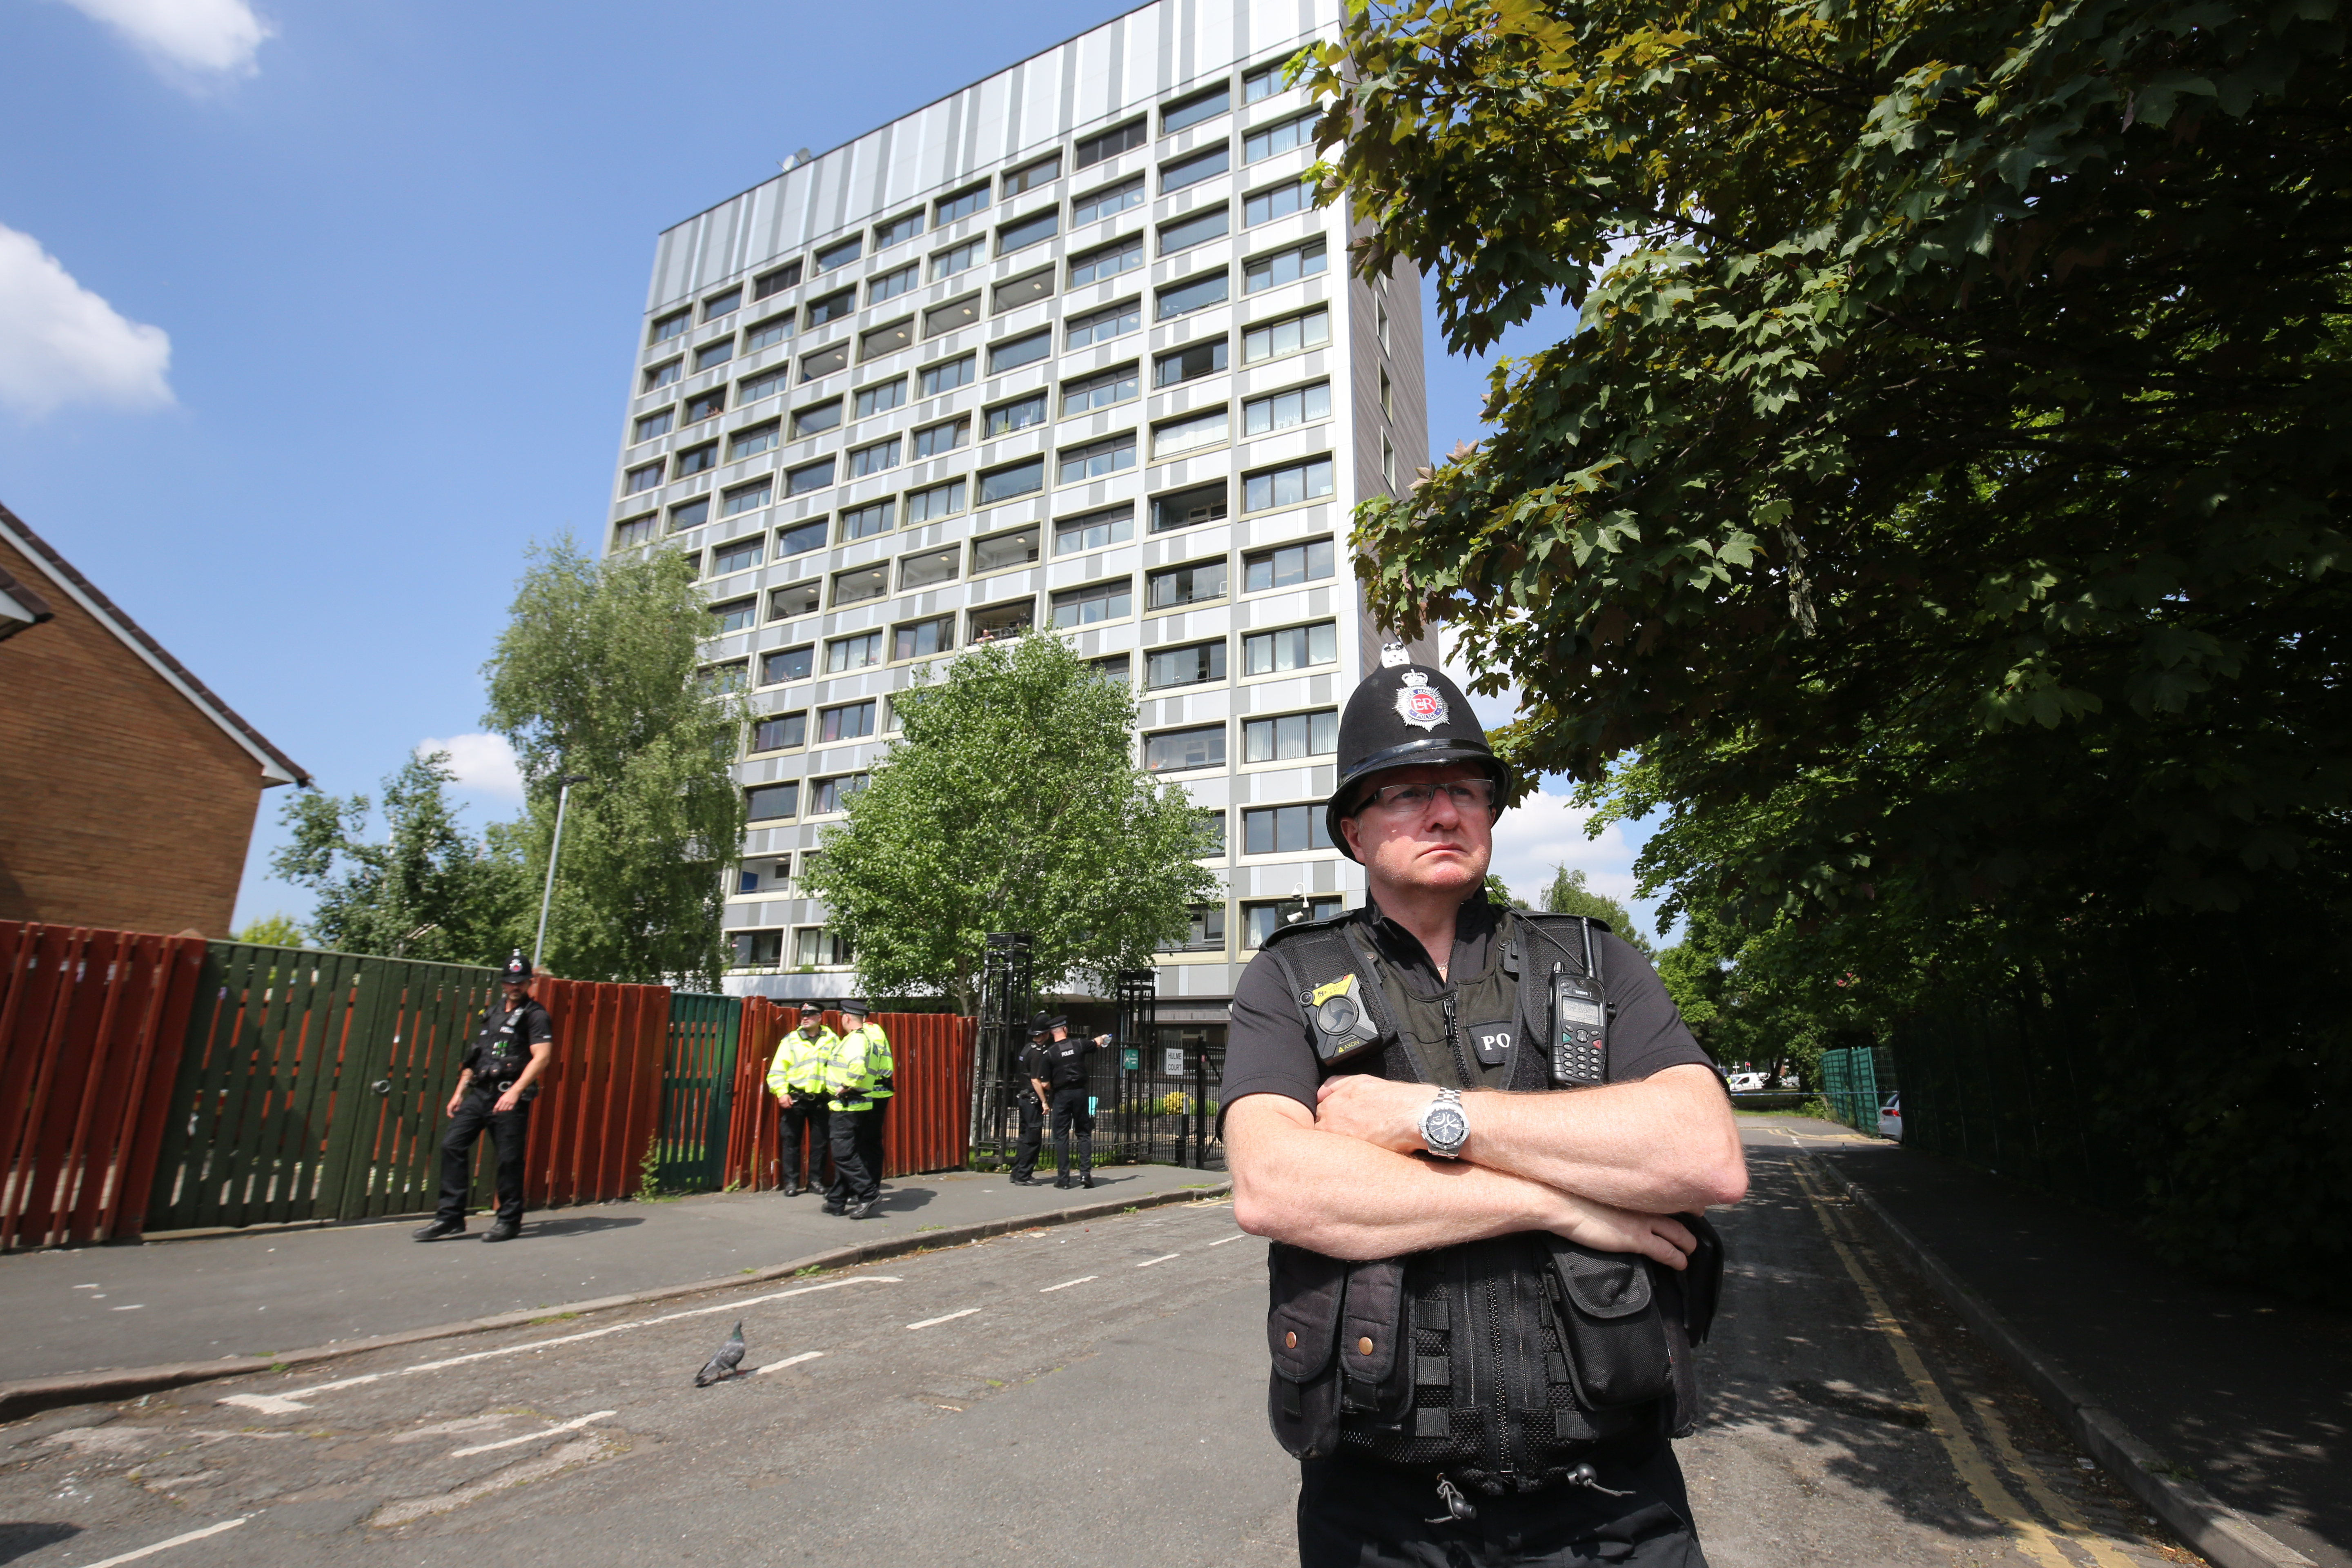 Police seal off Lindy Road, Hulme Manchester as the Manchester attack investigation continues on May 25, 2017 in Manchester, England.